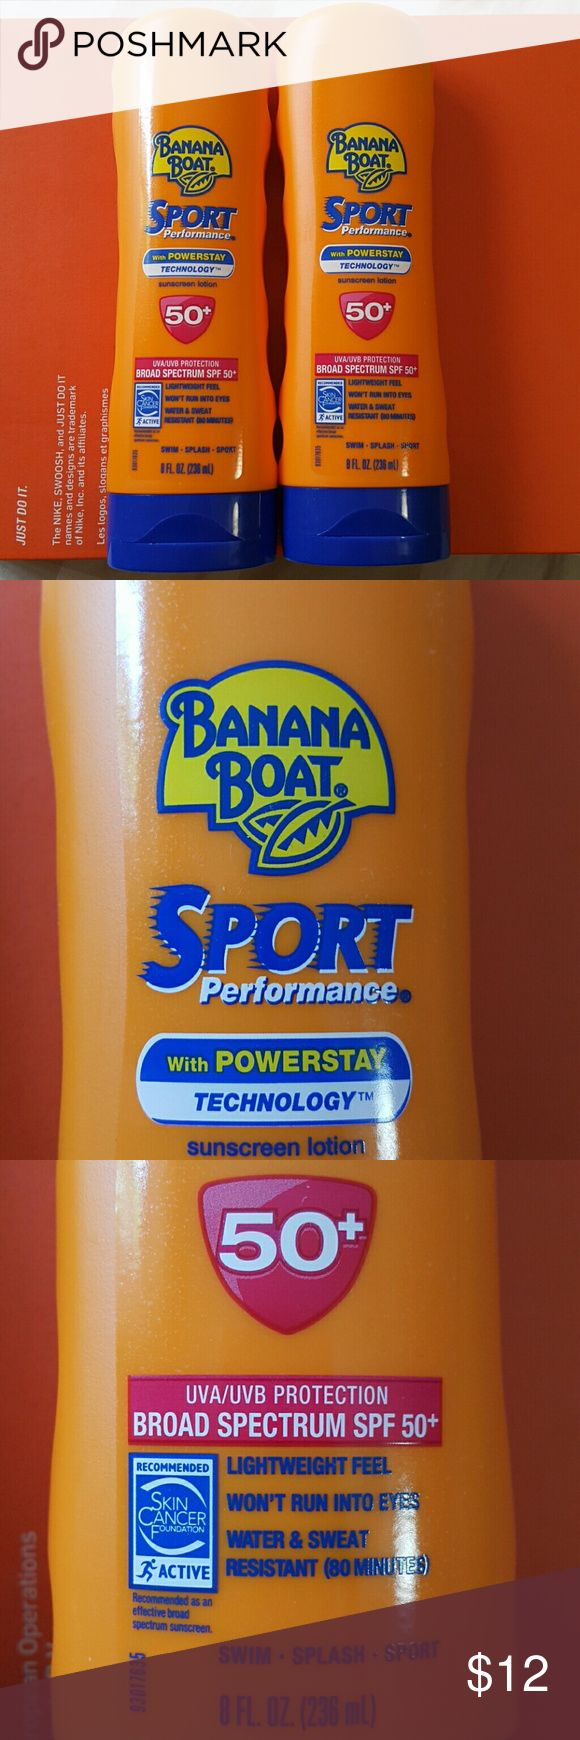 🆕(2 Pack)Banana Boat Sport Sunscreen Lotion Value Pack Banana Boat Sport Sunscreen Lotion Broad Spectrum SPF 50+ with UVA/UVB protection 236 ml. $12 for 2 packs, all NEW and FULL. Bundle with your favorite tops and save 15%. Banana Boat Other